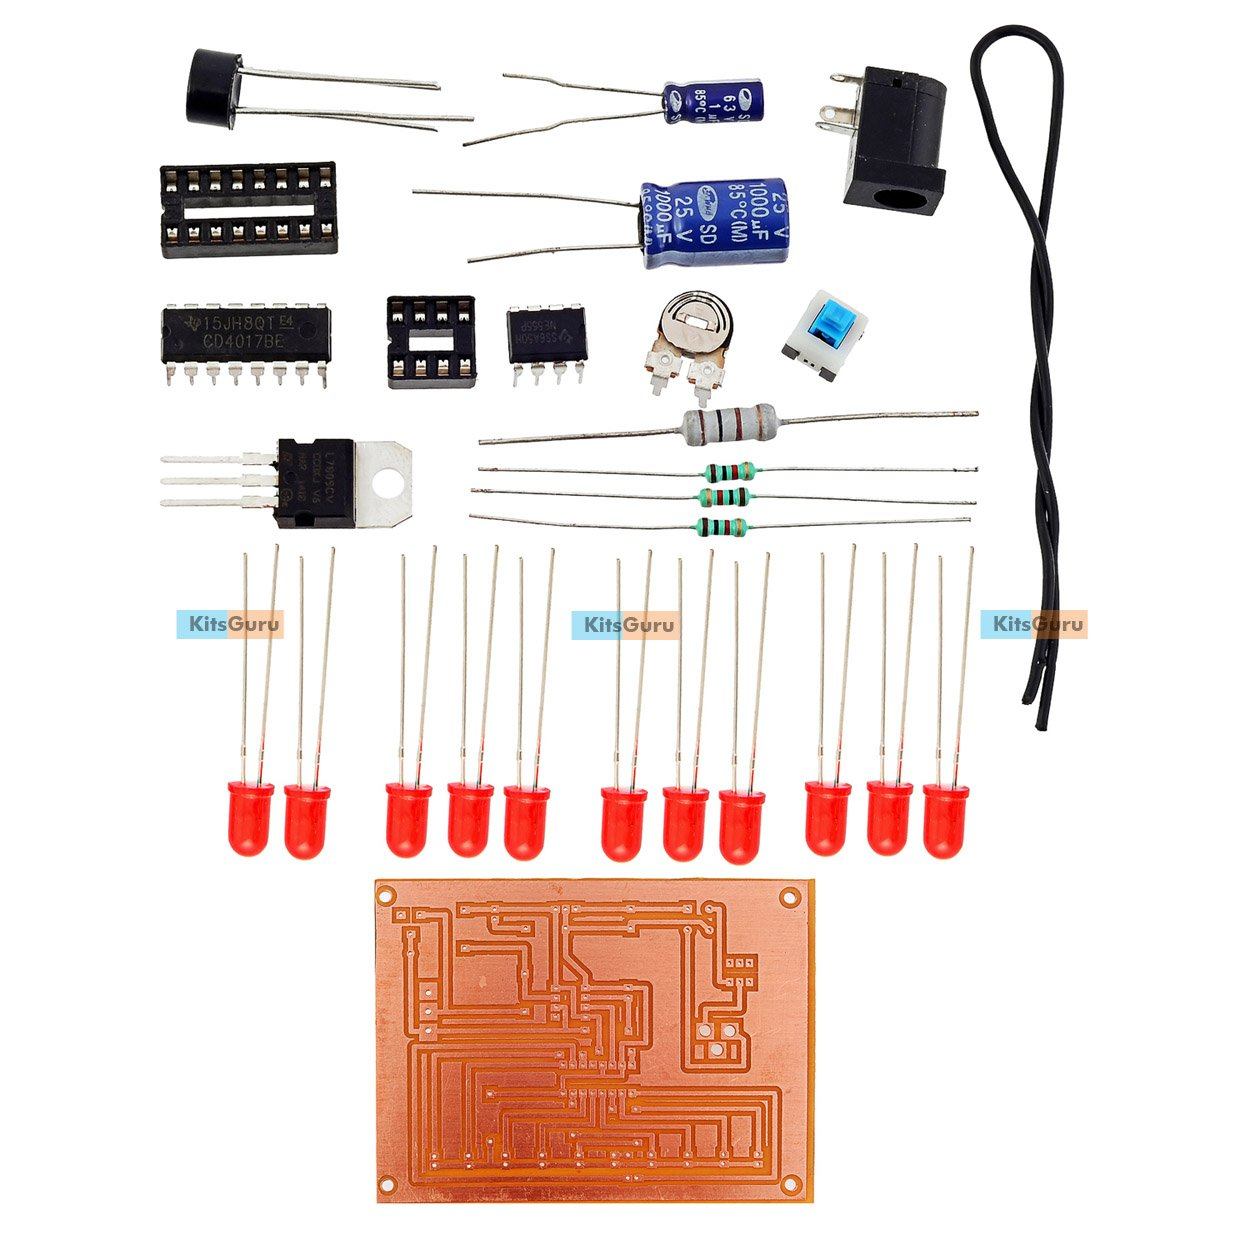 Kitsguru Diy Kit Led Chaser Circuit Lgkt078 Projects Amazon Projectsonelectricalengineering Quiz Project Using Ic 555